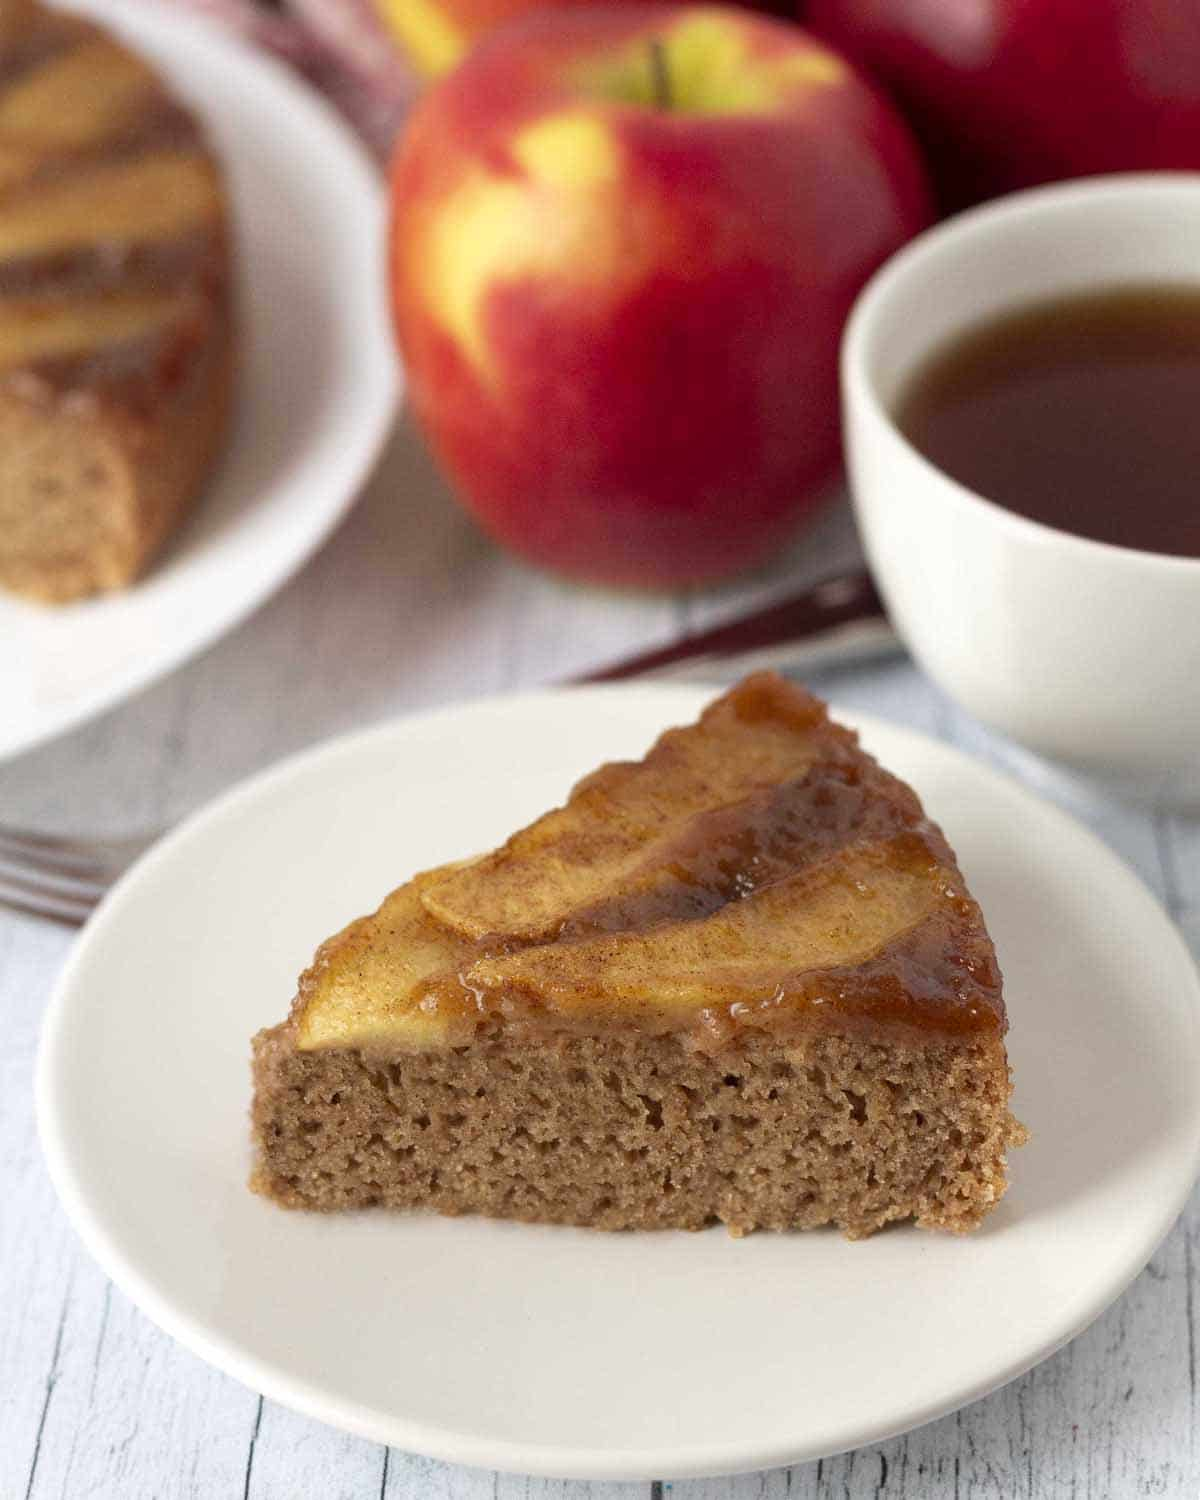 A slice of vegan gluten-free apple upside down cake on a small white plate.